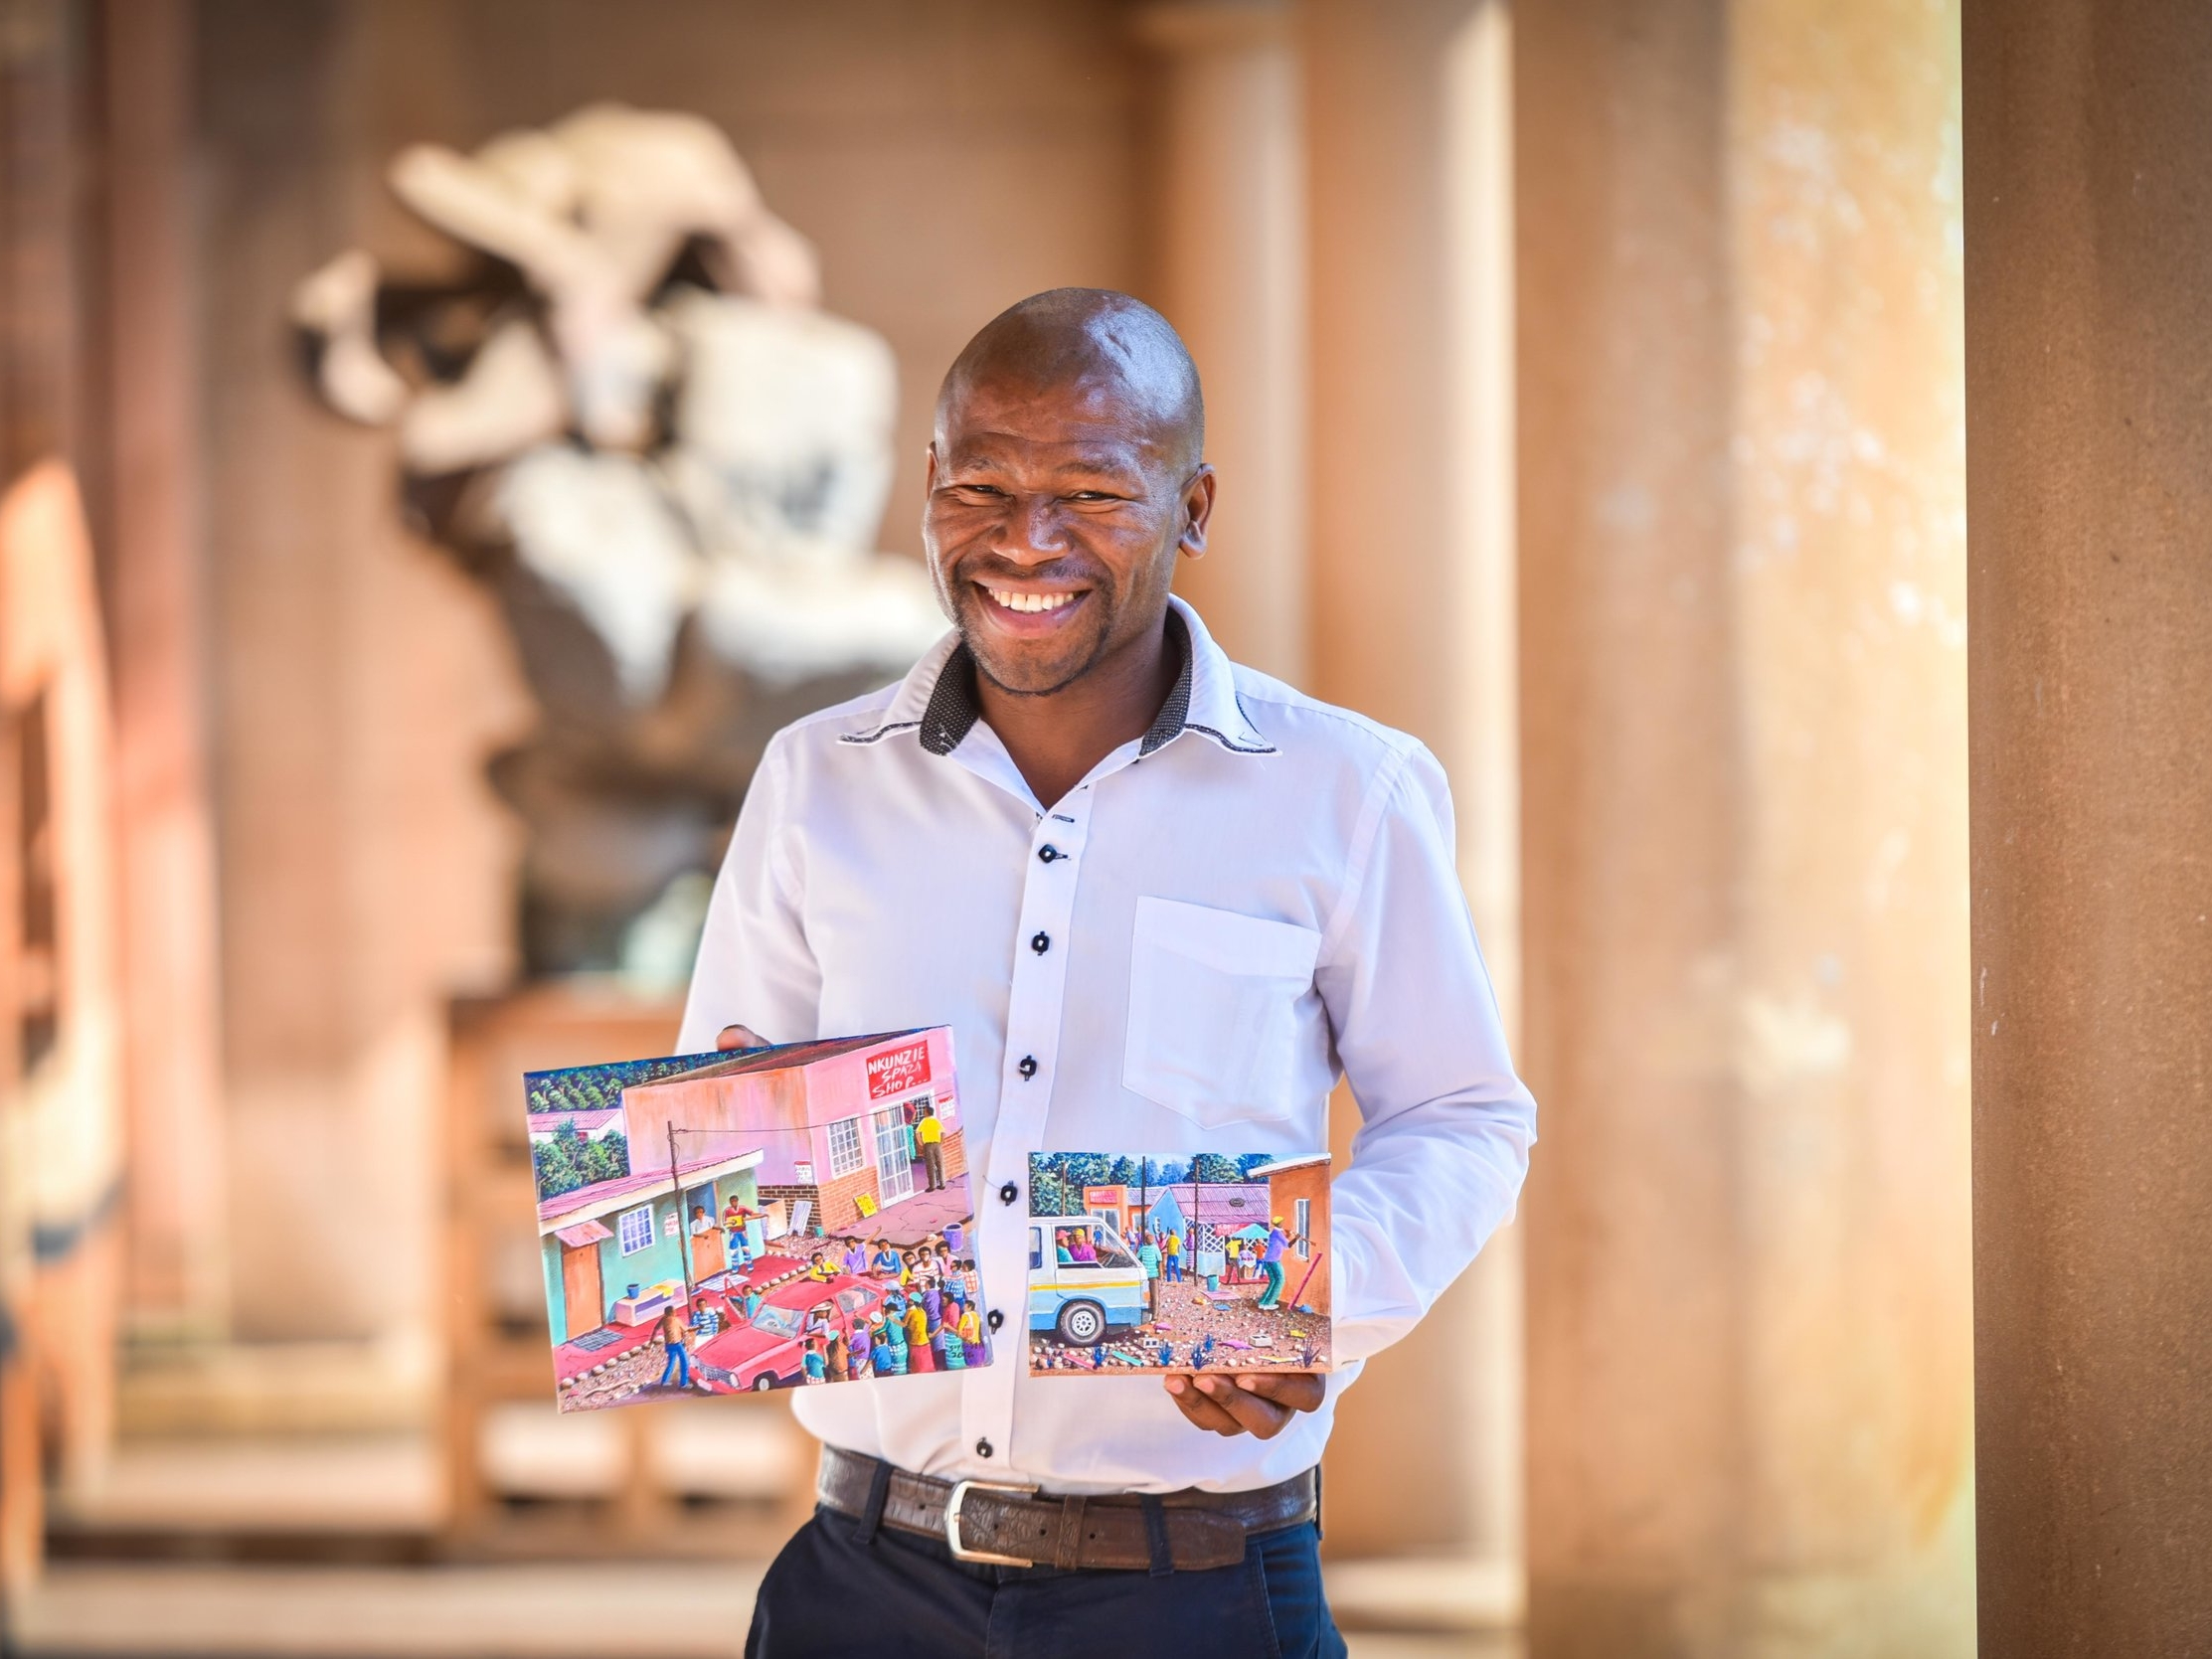 Pictured here is Siyabonga Sikosana handing over two artworks to FOTAG for the FABULOUS PICTURE SHOW 2016. See the FABULOUS PICTURE SHOW page for feedback on the sales.